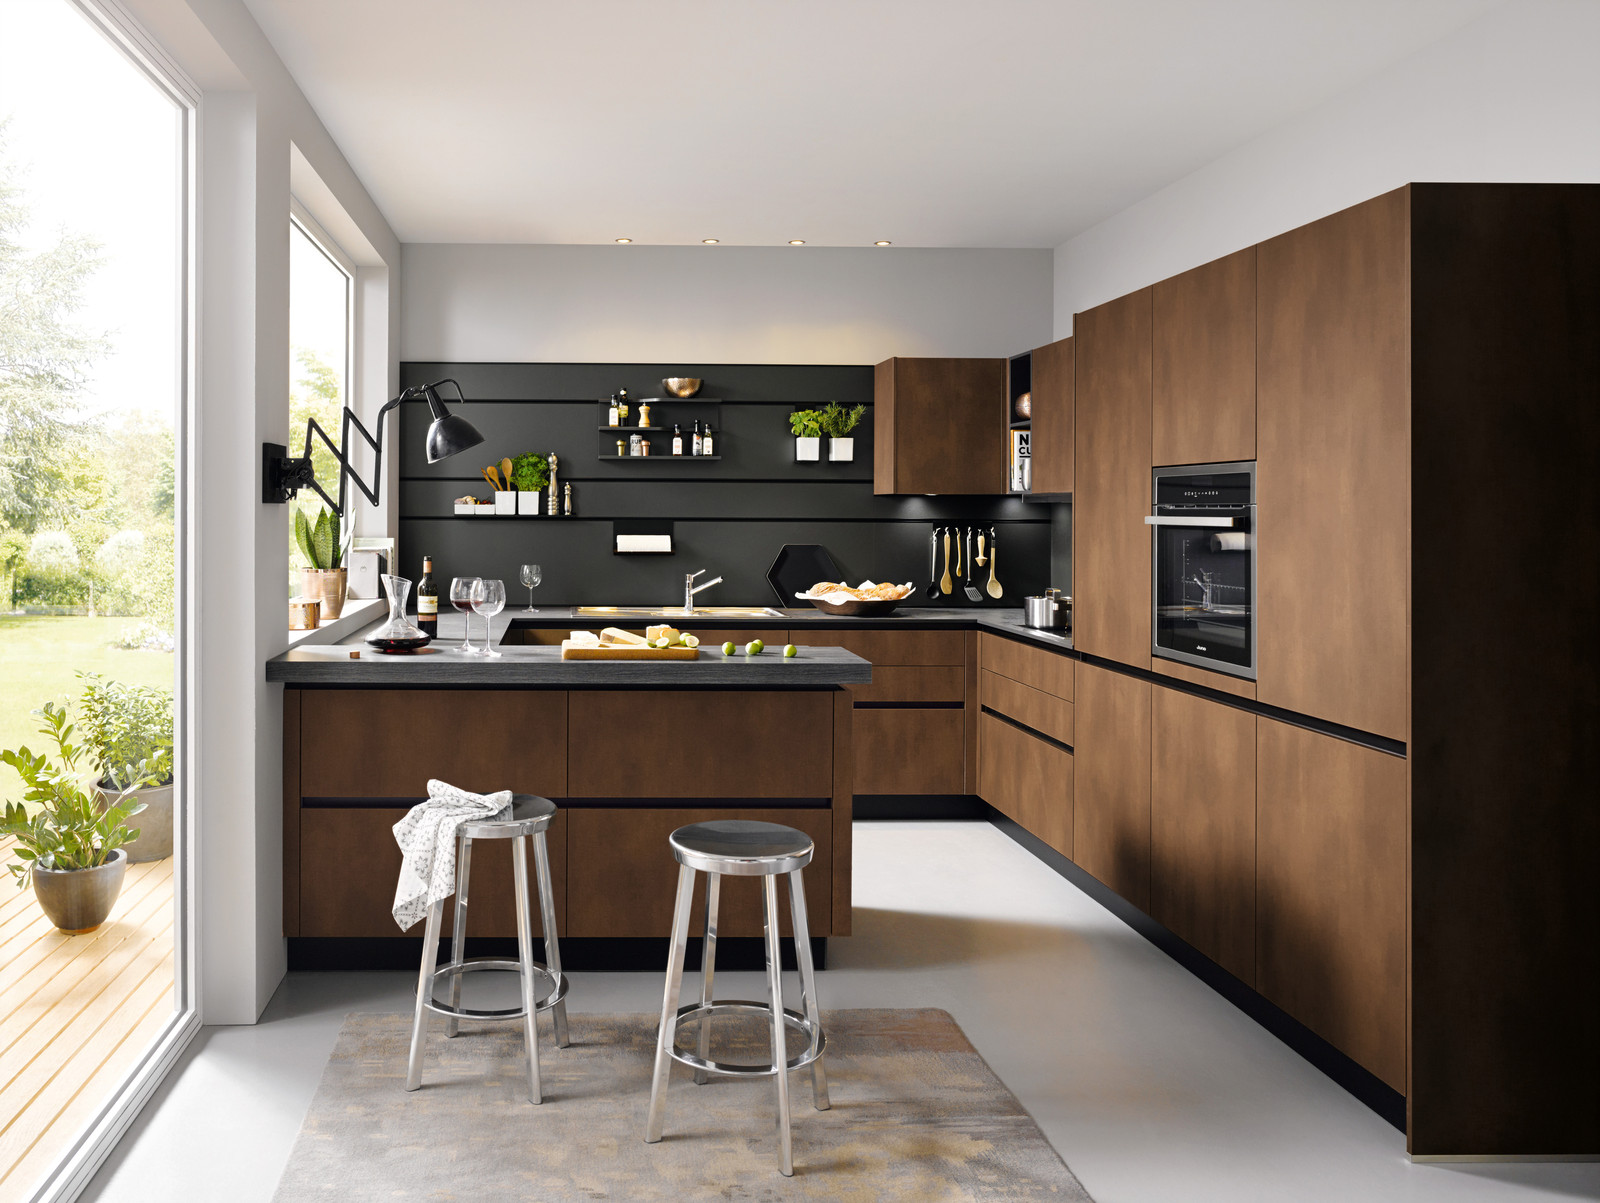 trend-of-the-week-how-to-get-the-contemporary-kitchen